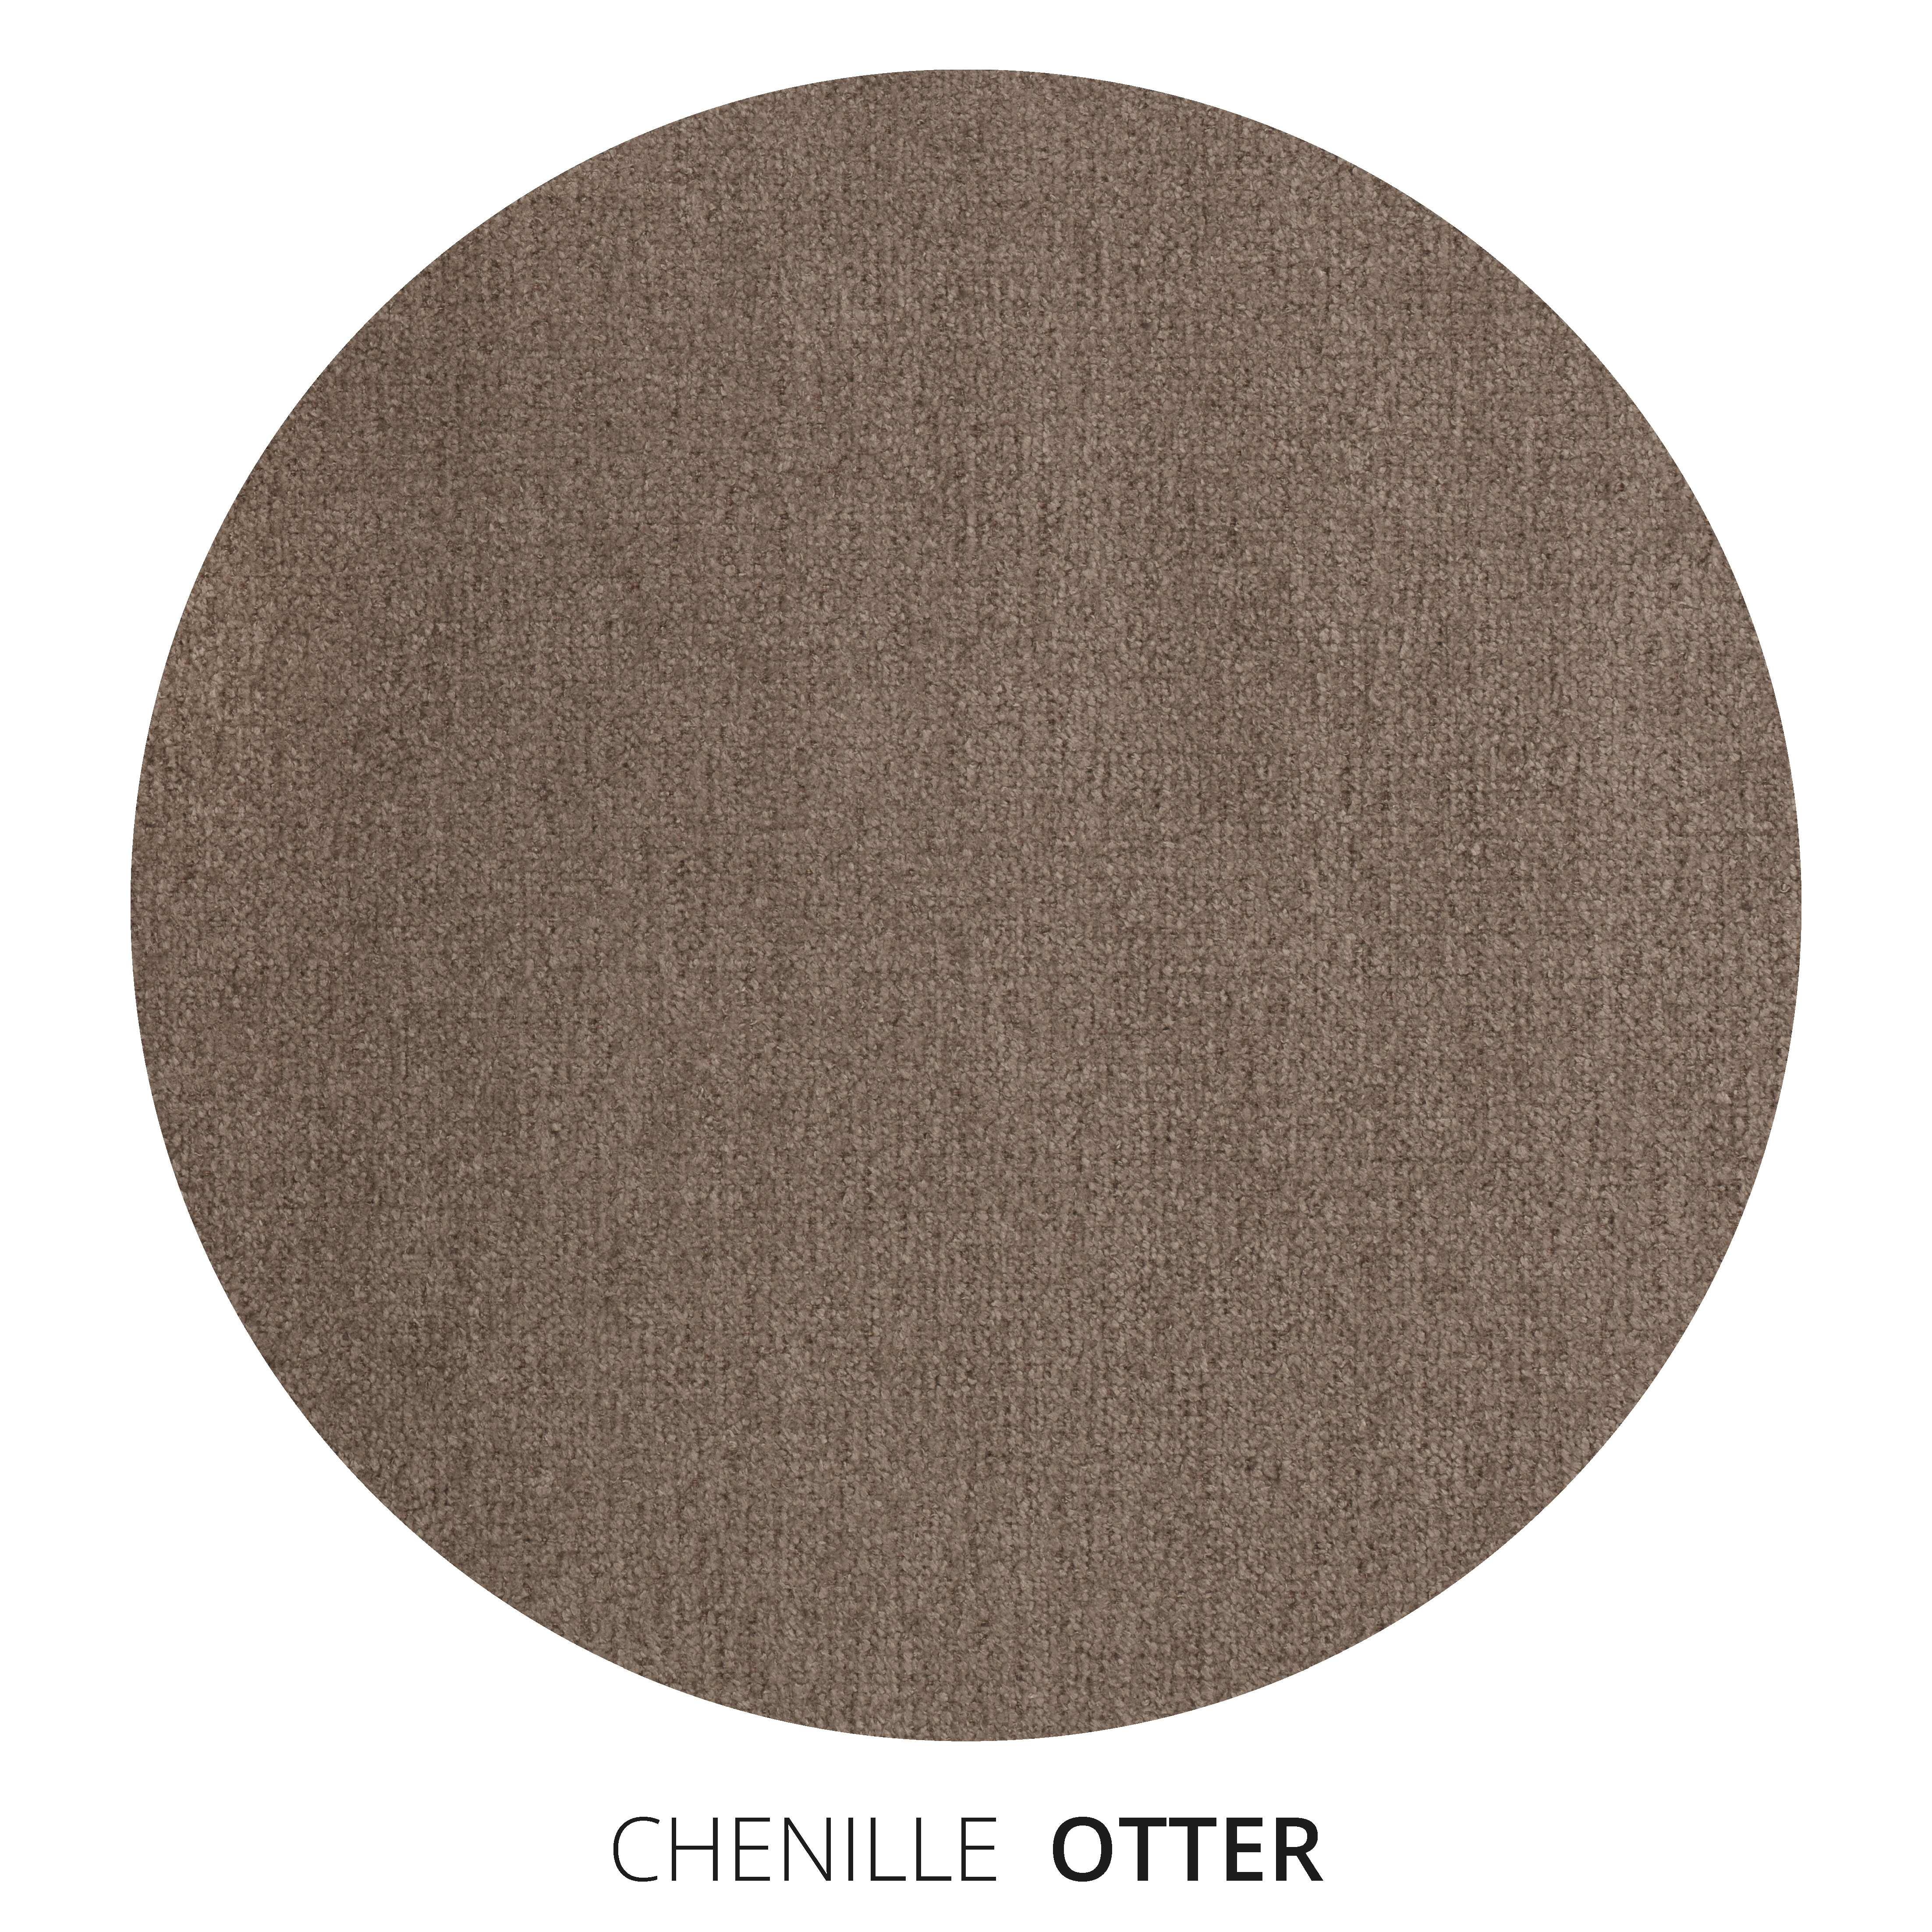 Otter Chenille Swatch